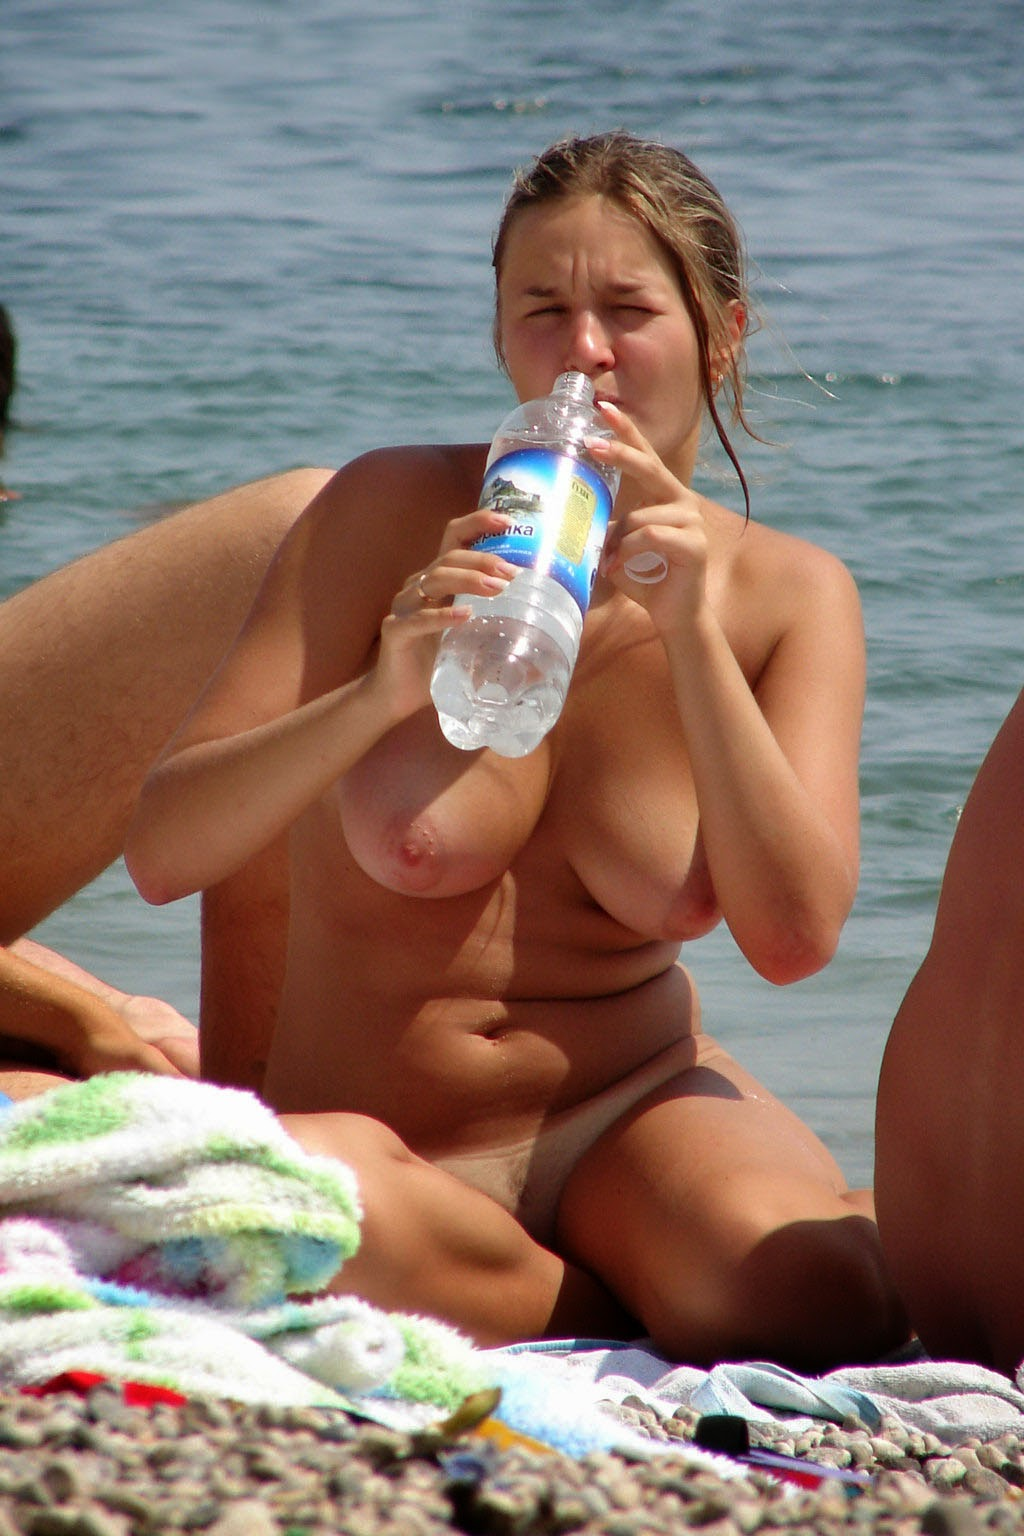 Mature Women Nude At The Beach